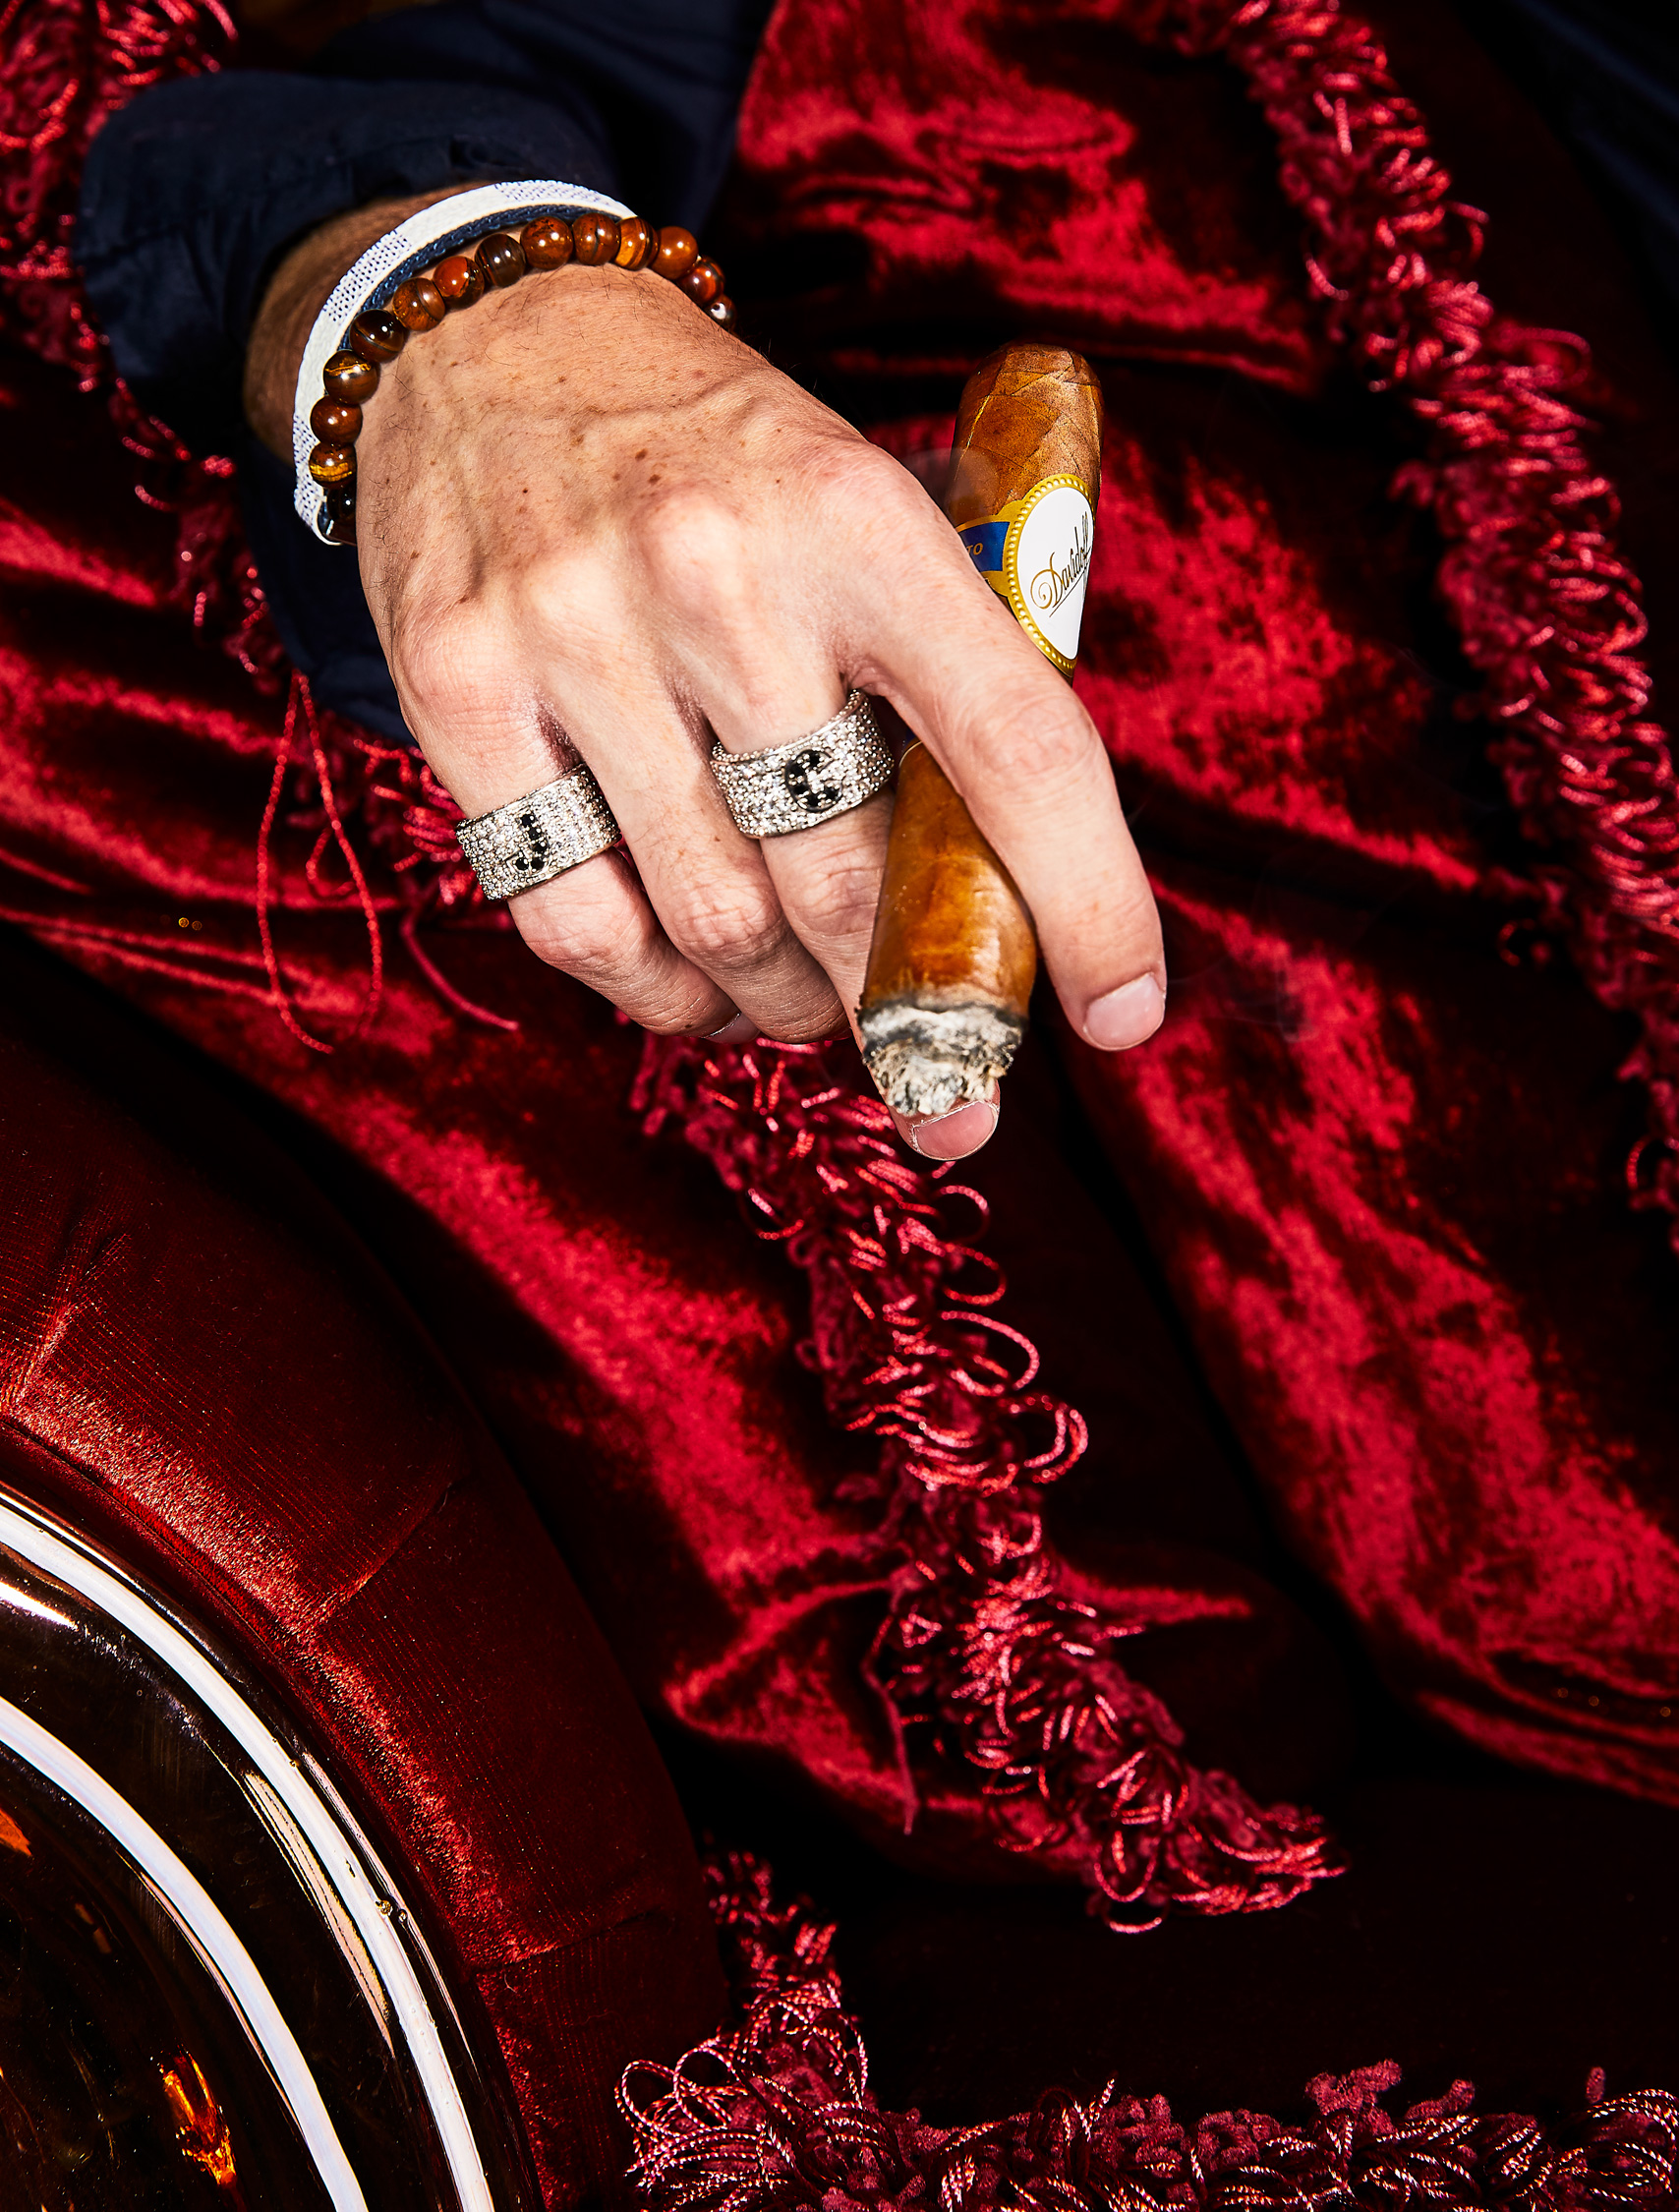 Cigar Aficionado - The Crypto Crew - Stephen Denton Photography - Los Angeles, CA / Phoenix, AZ Commercial Photographer